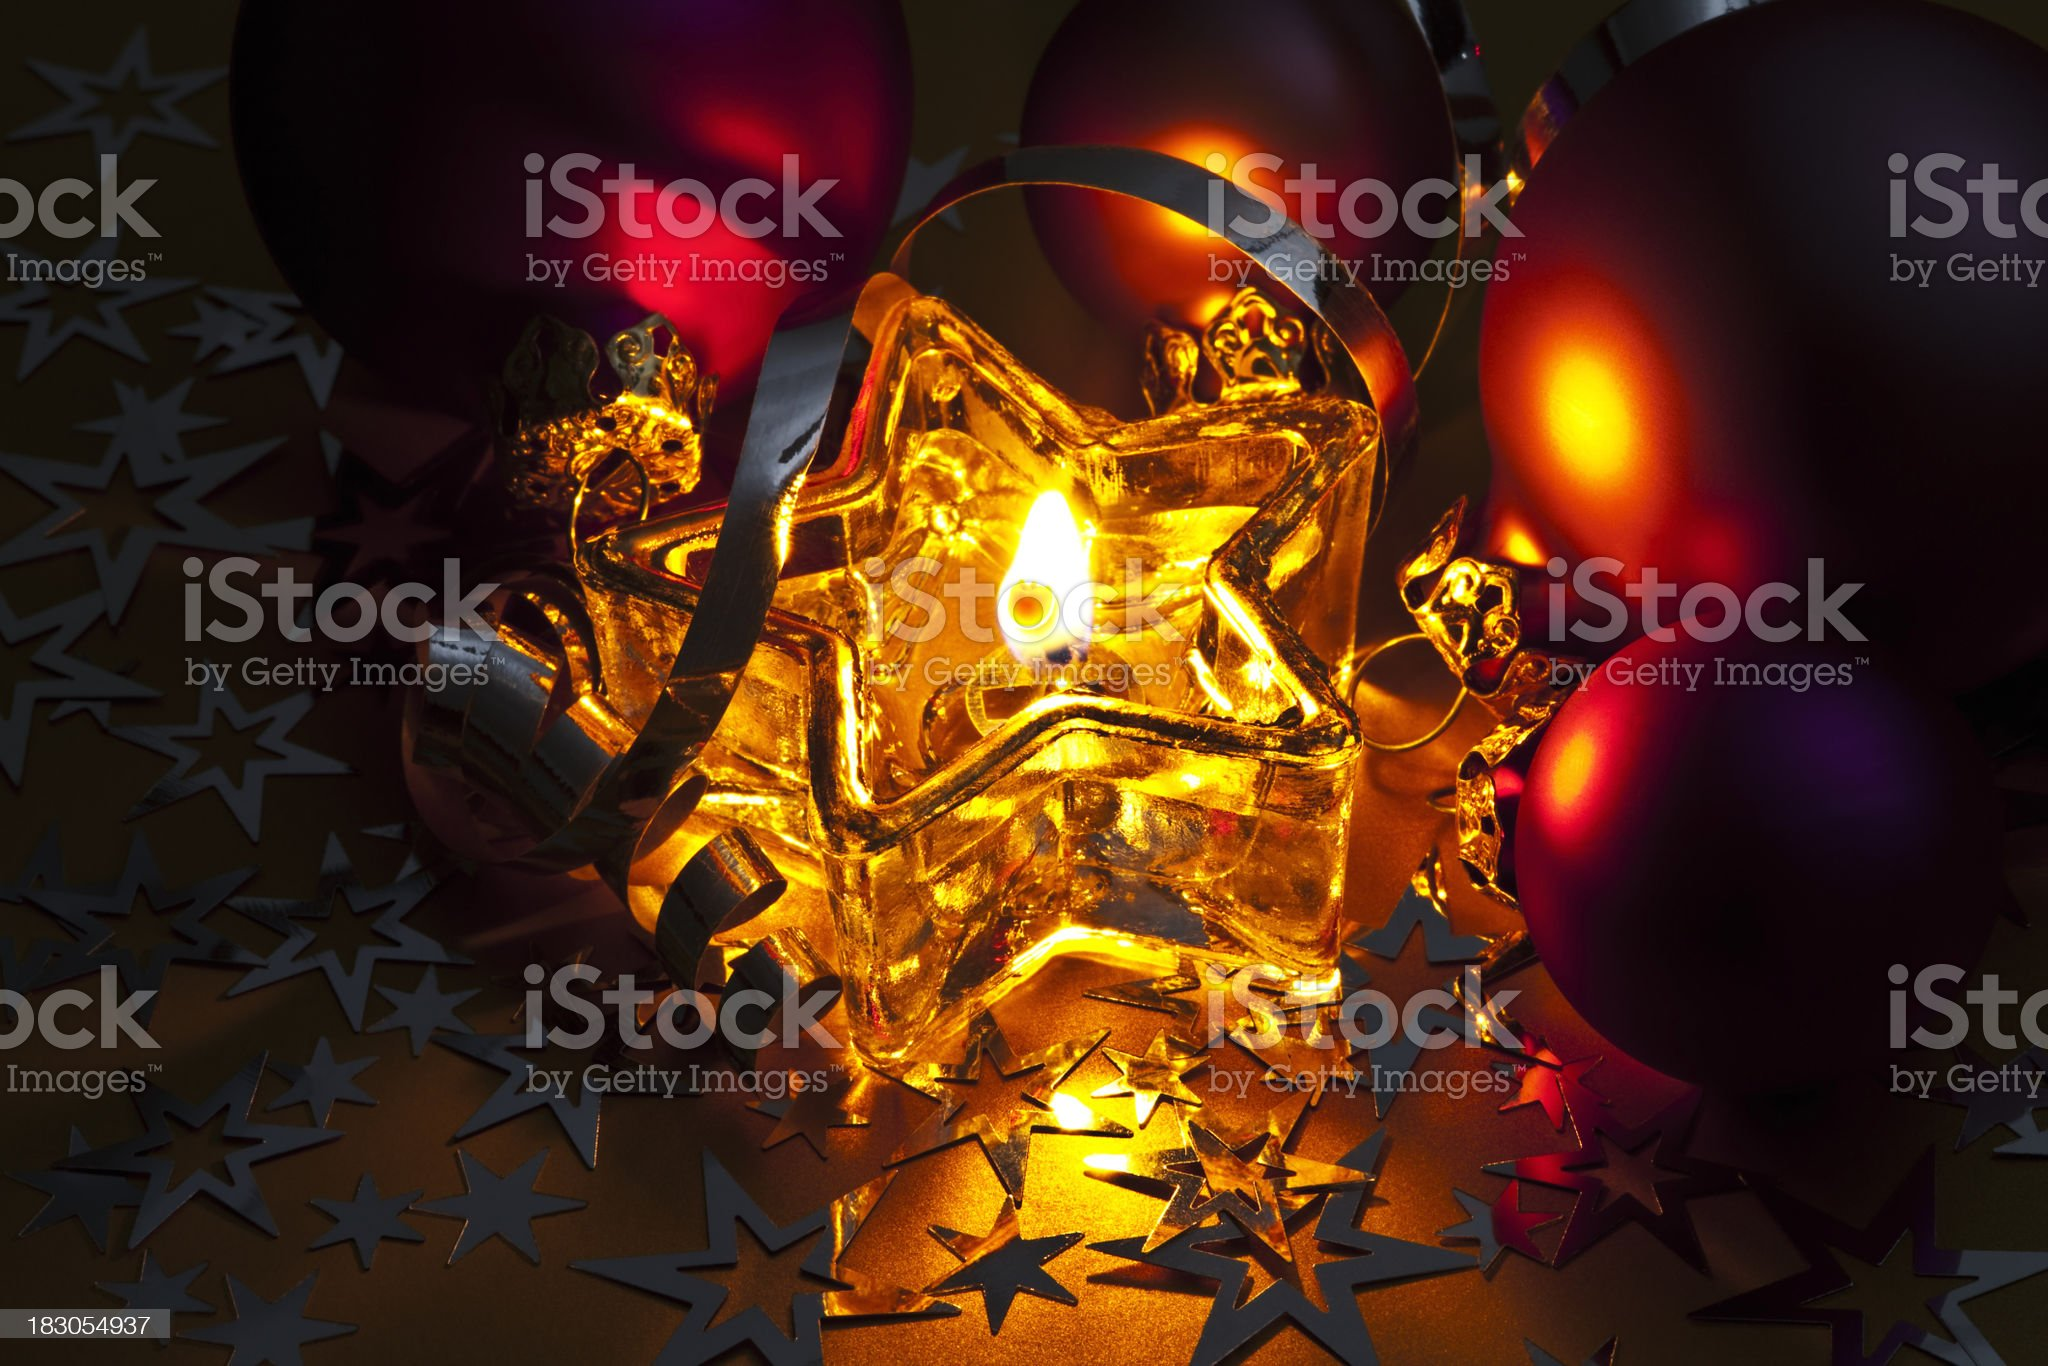 Glowing Christmas Candle, Baubles, Stars, Ribbons royalty-free stock photo